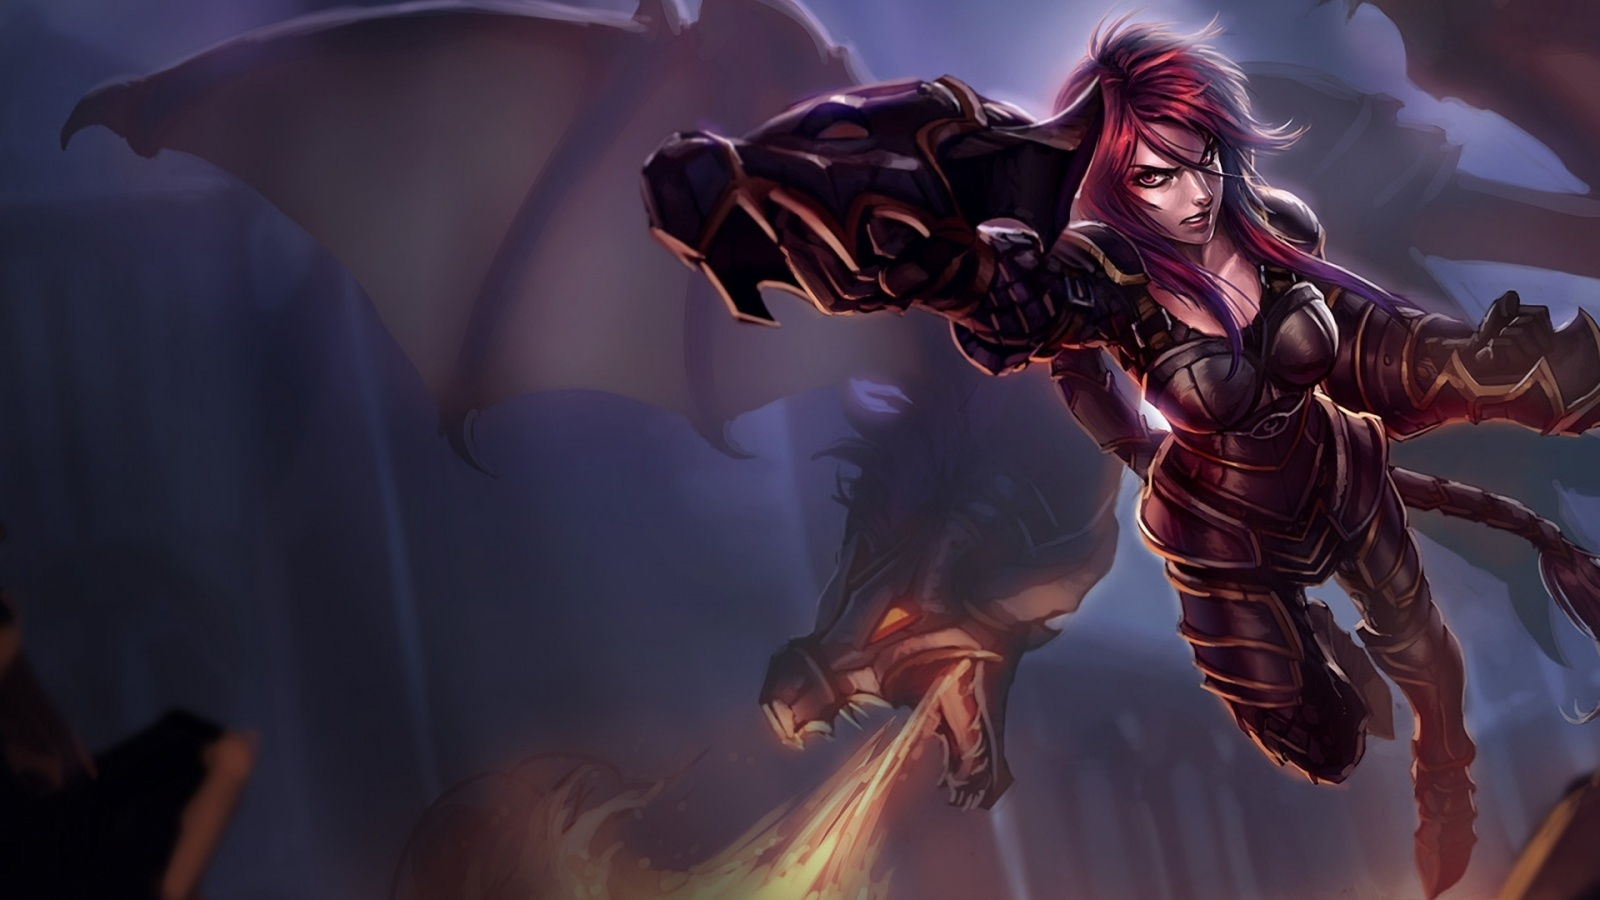 Shyvana Wallpaper 1600x900 by Virgate on DeviantArt